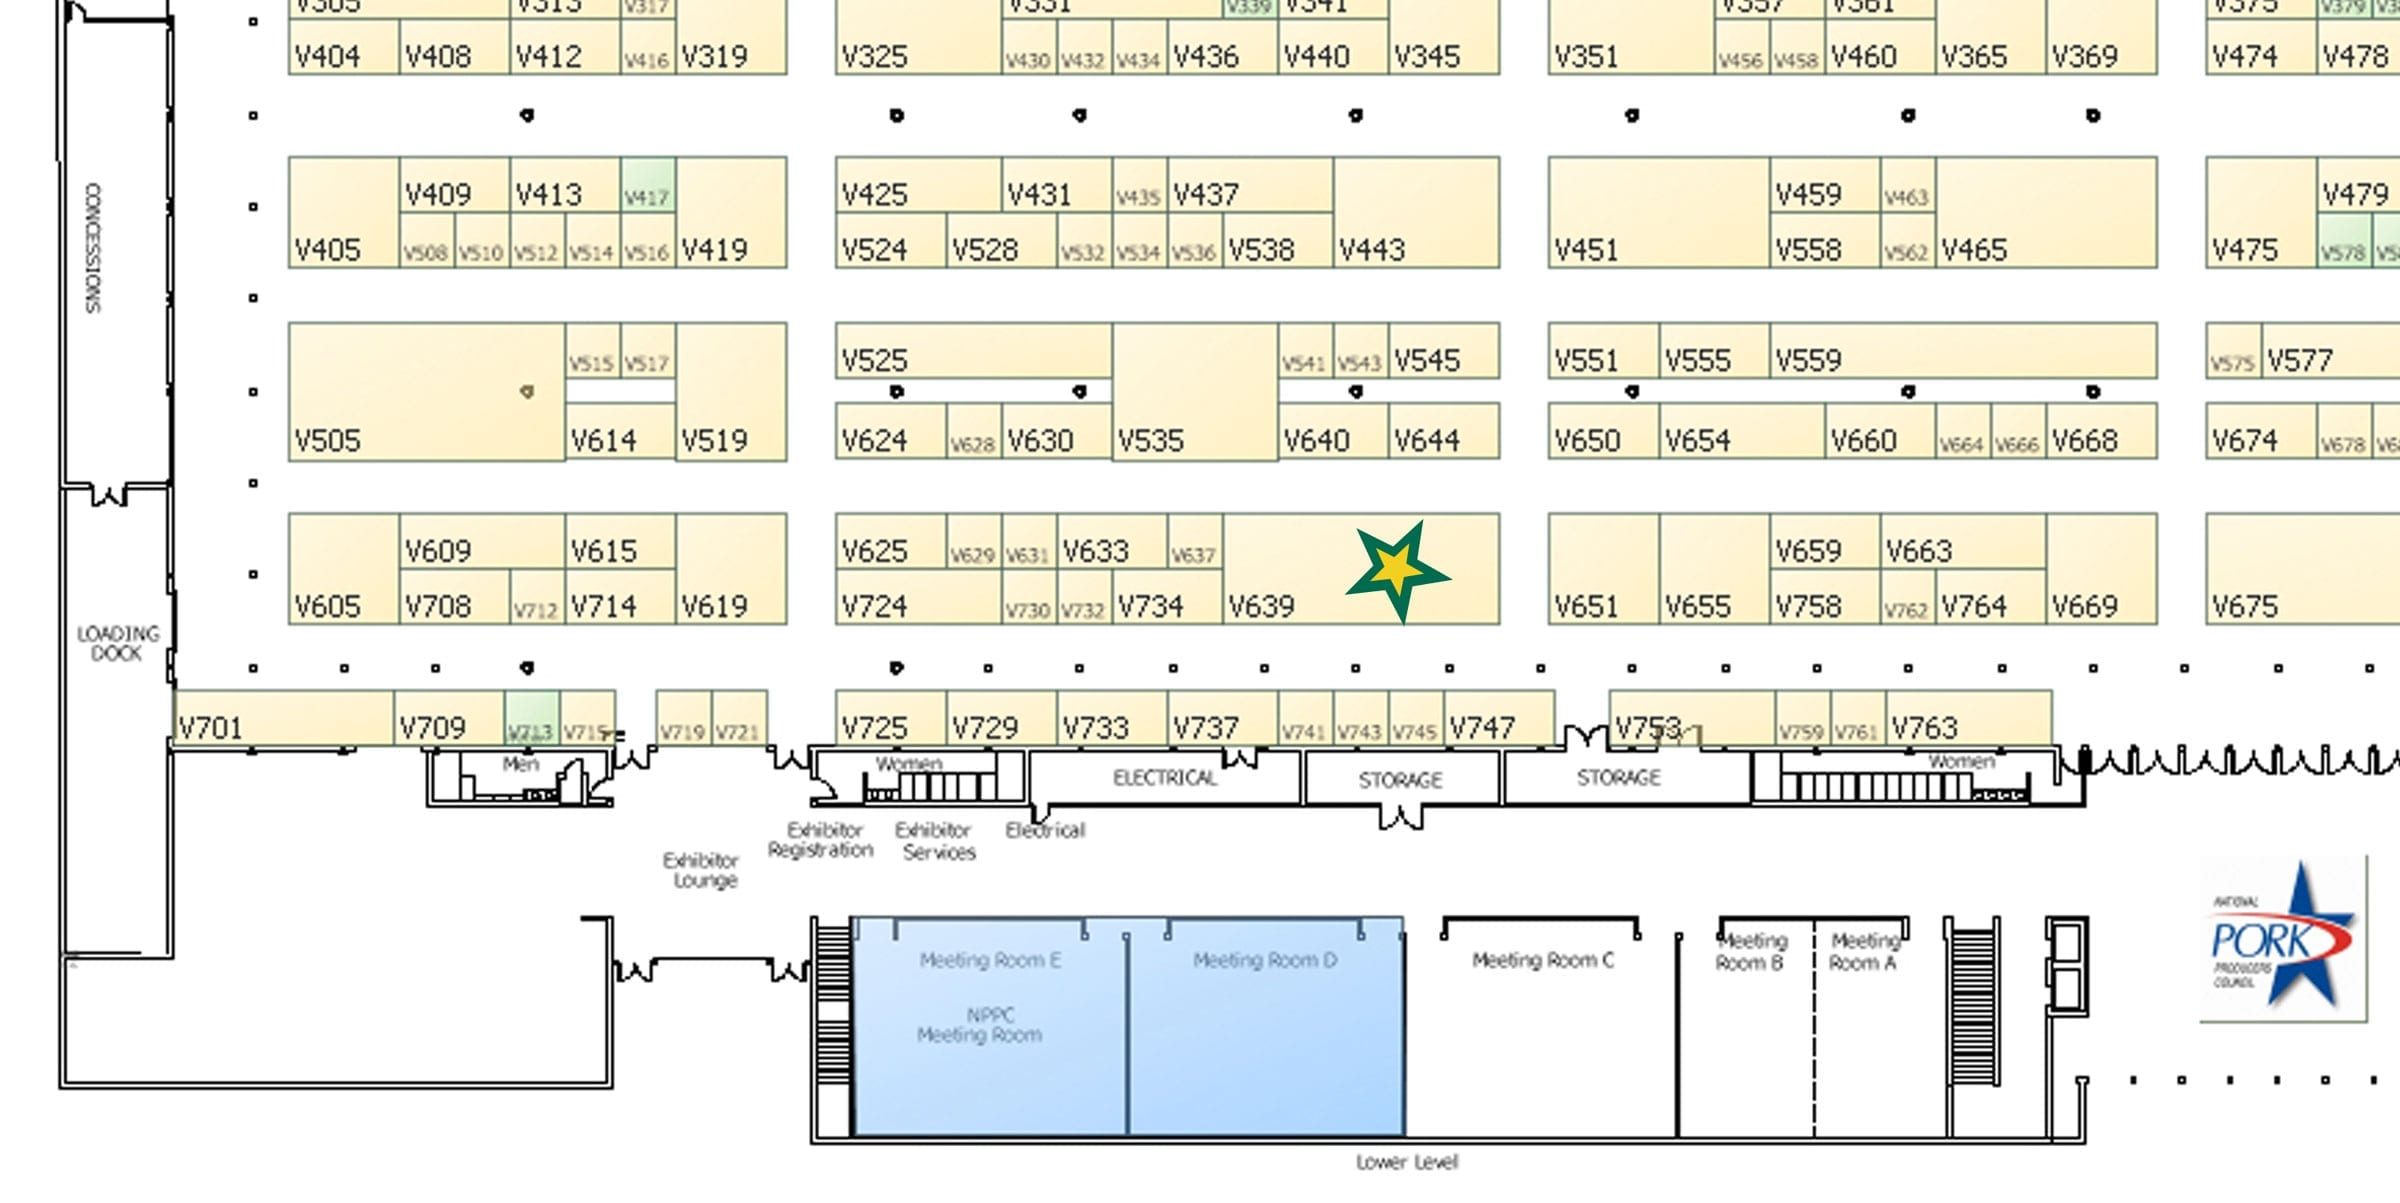 World Pork Expo Booth Location